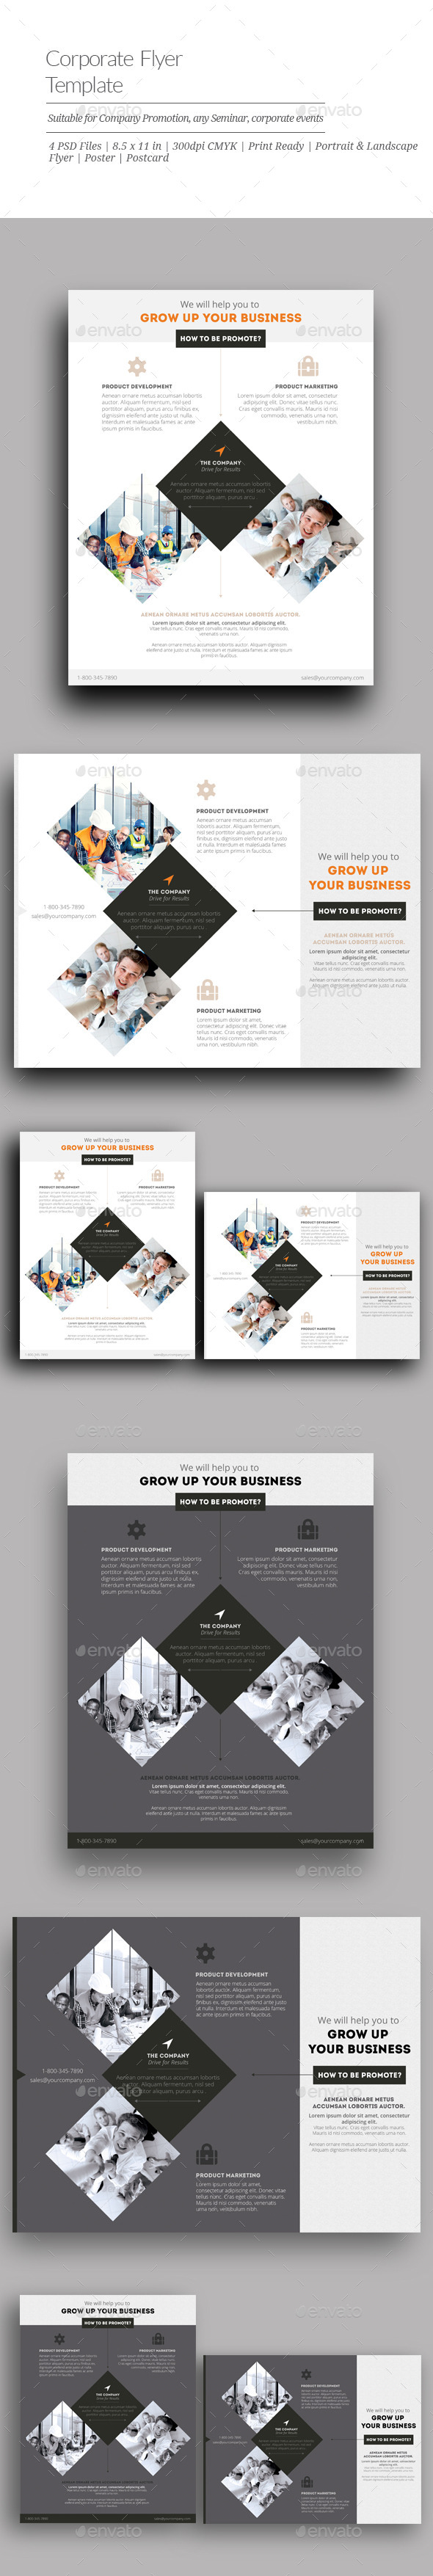 GraphicRiver Corporate Flyer Templates 10923506